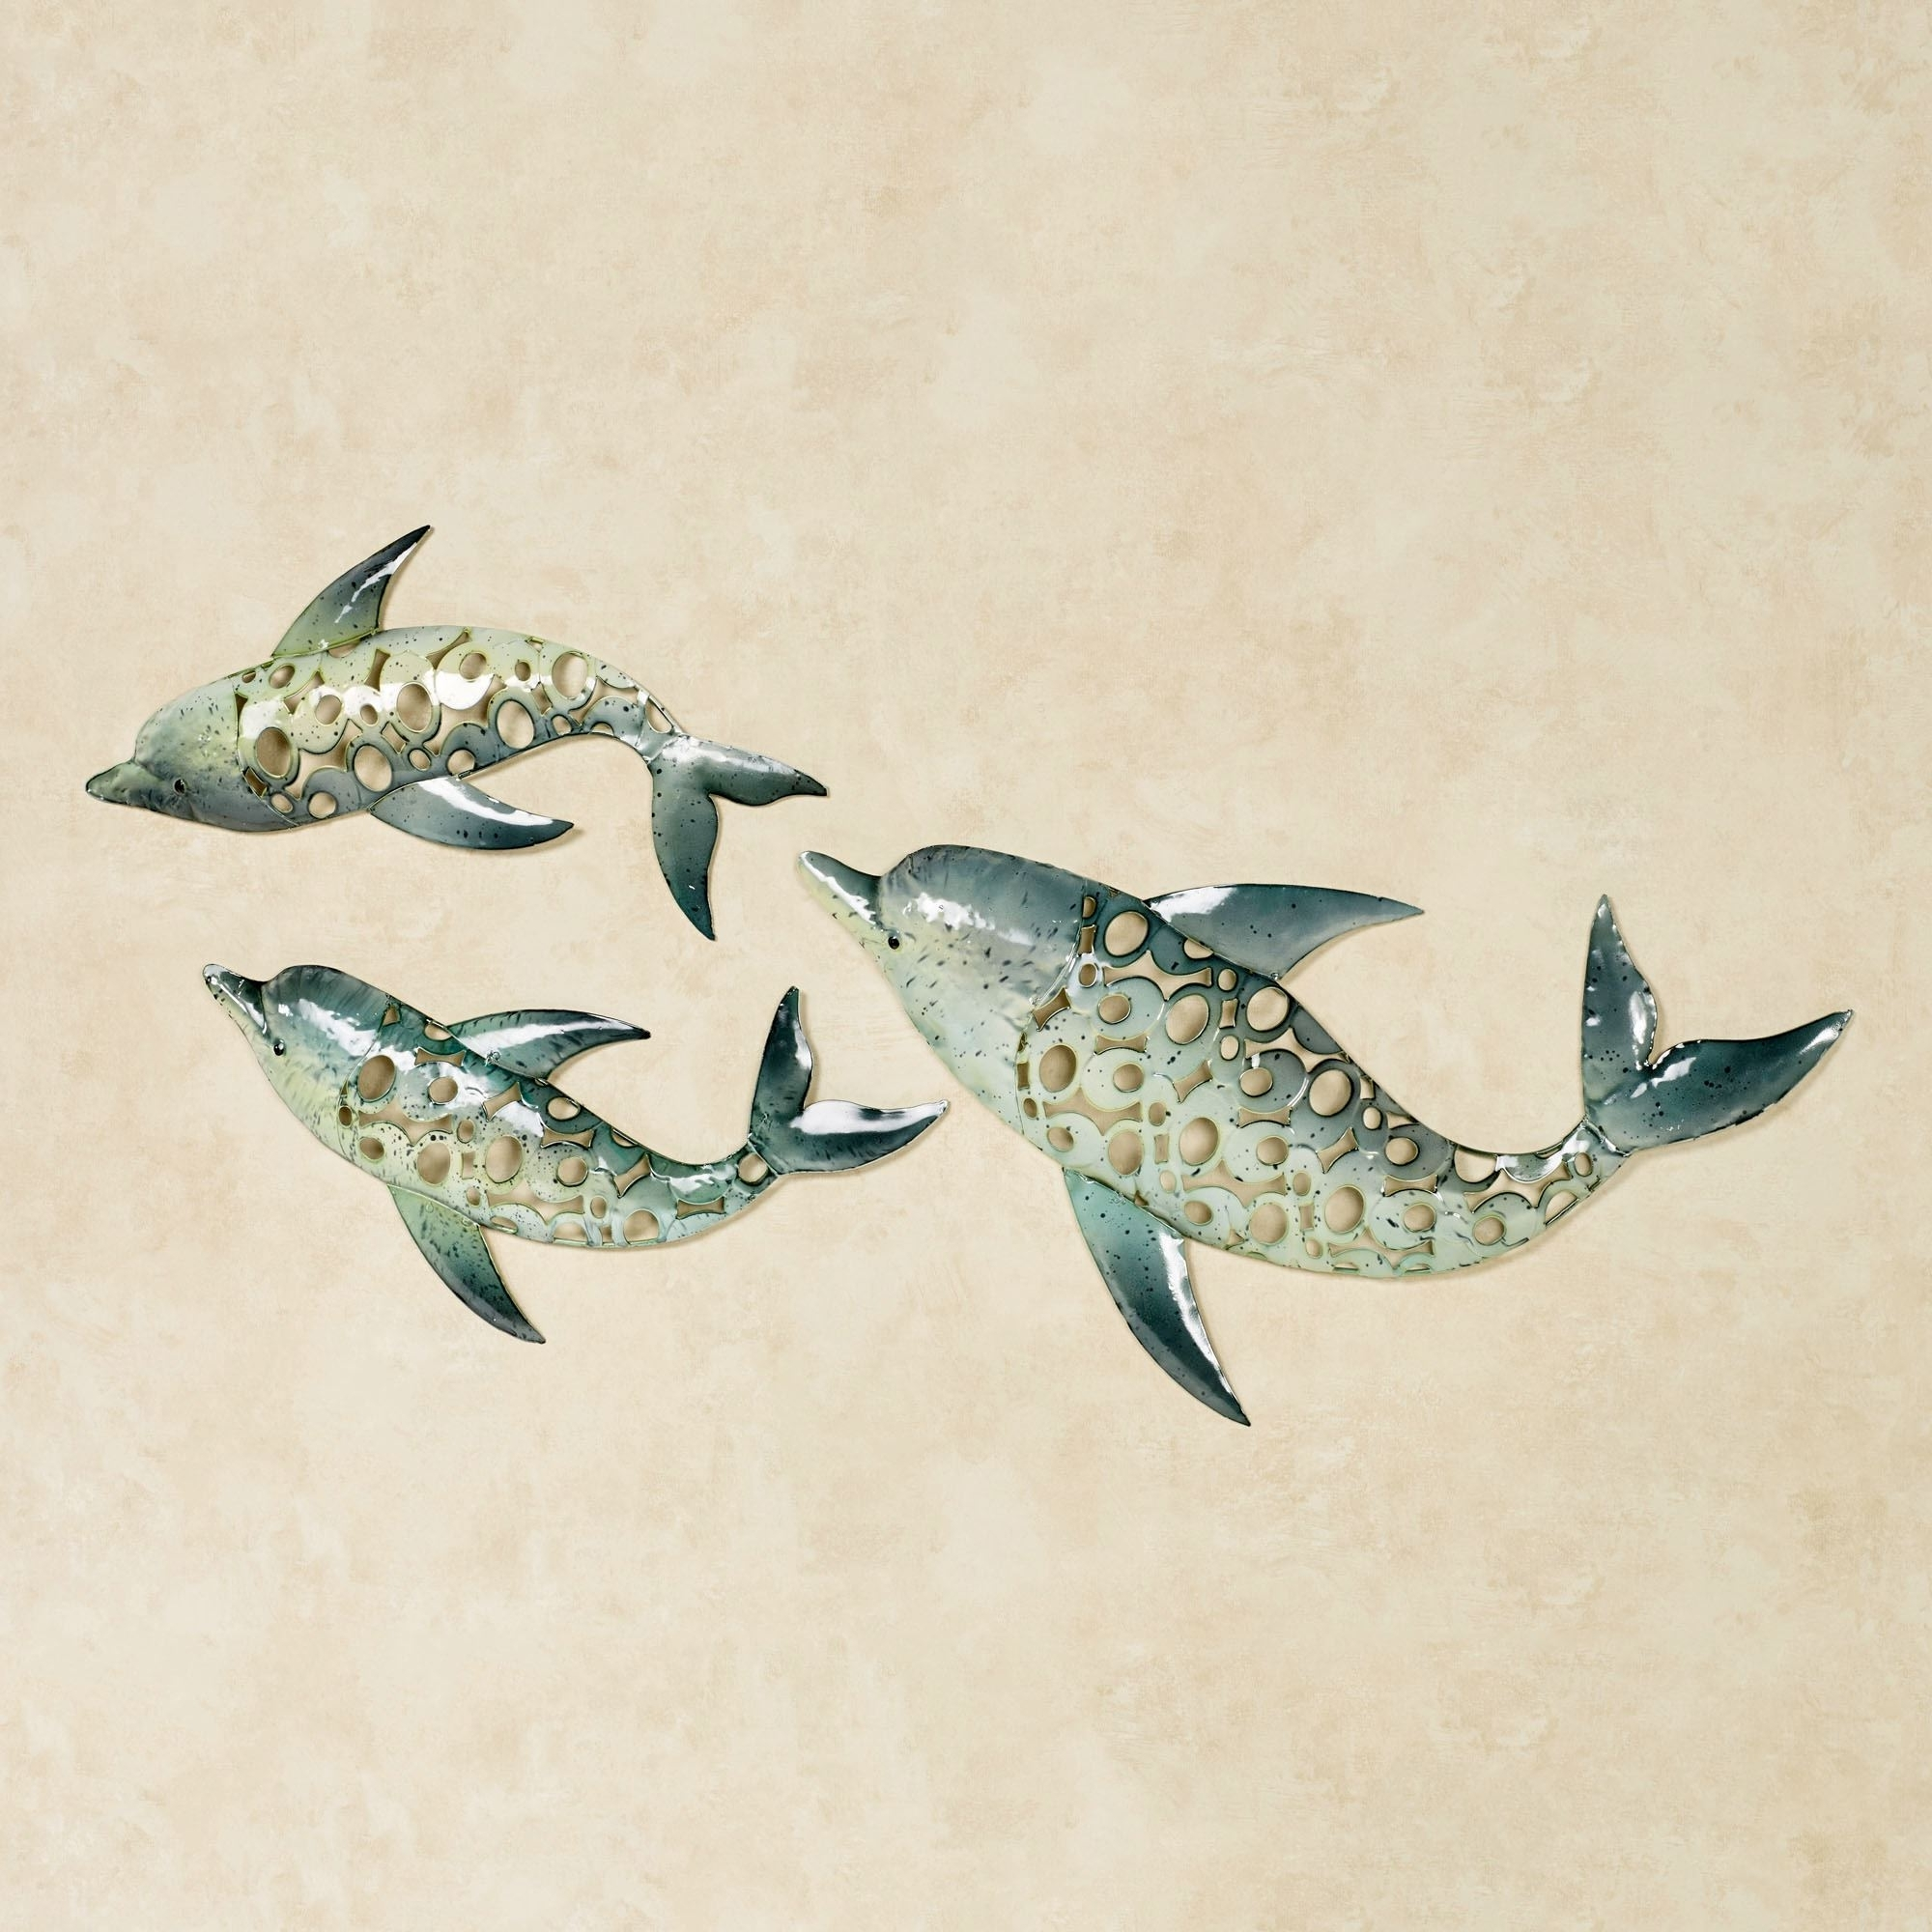 Dolphin Trio Indoor Outdoor Metal Wall Art Set Intended For Preferred Dolphin Metal Wall Art (View 8 of 15)